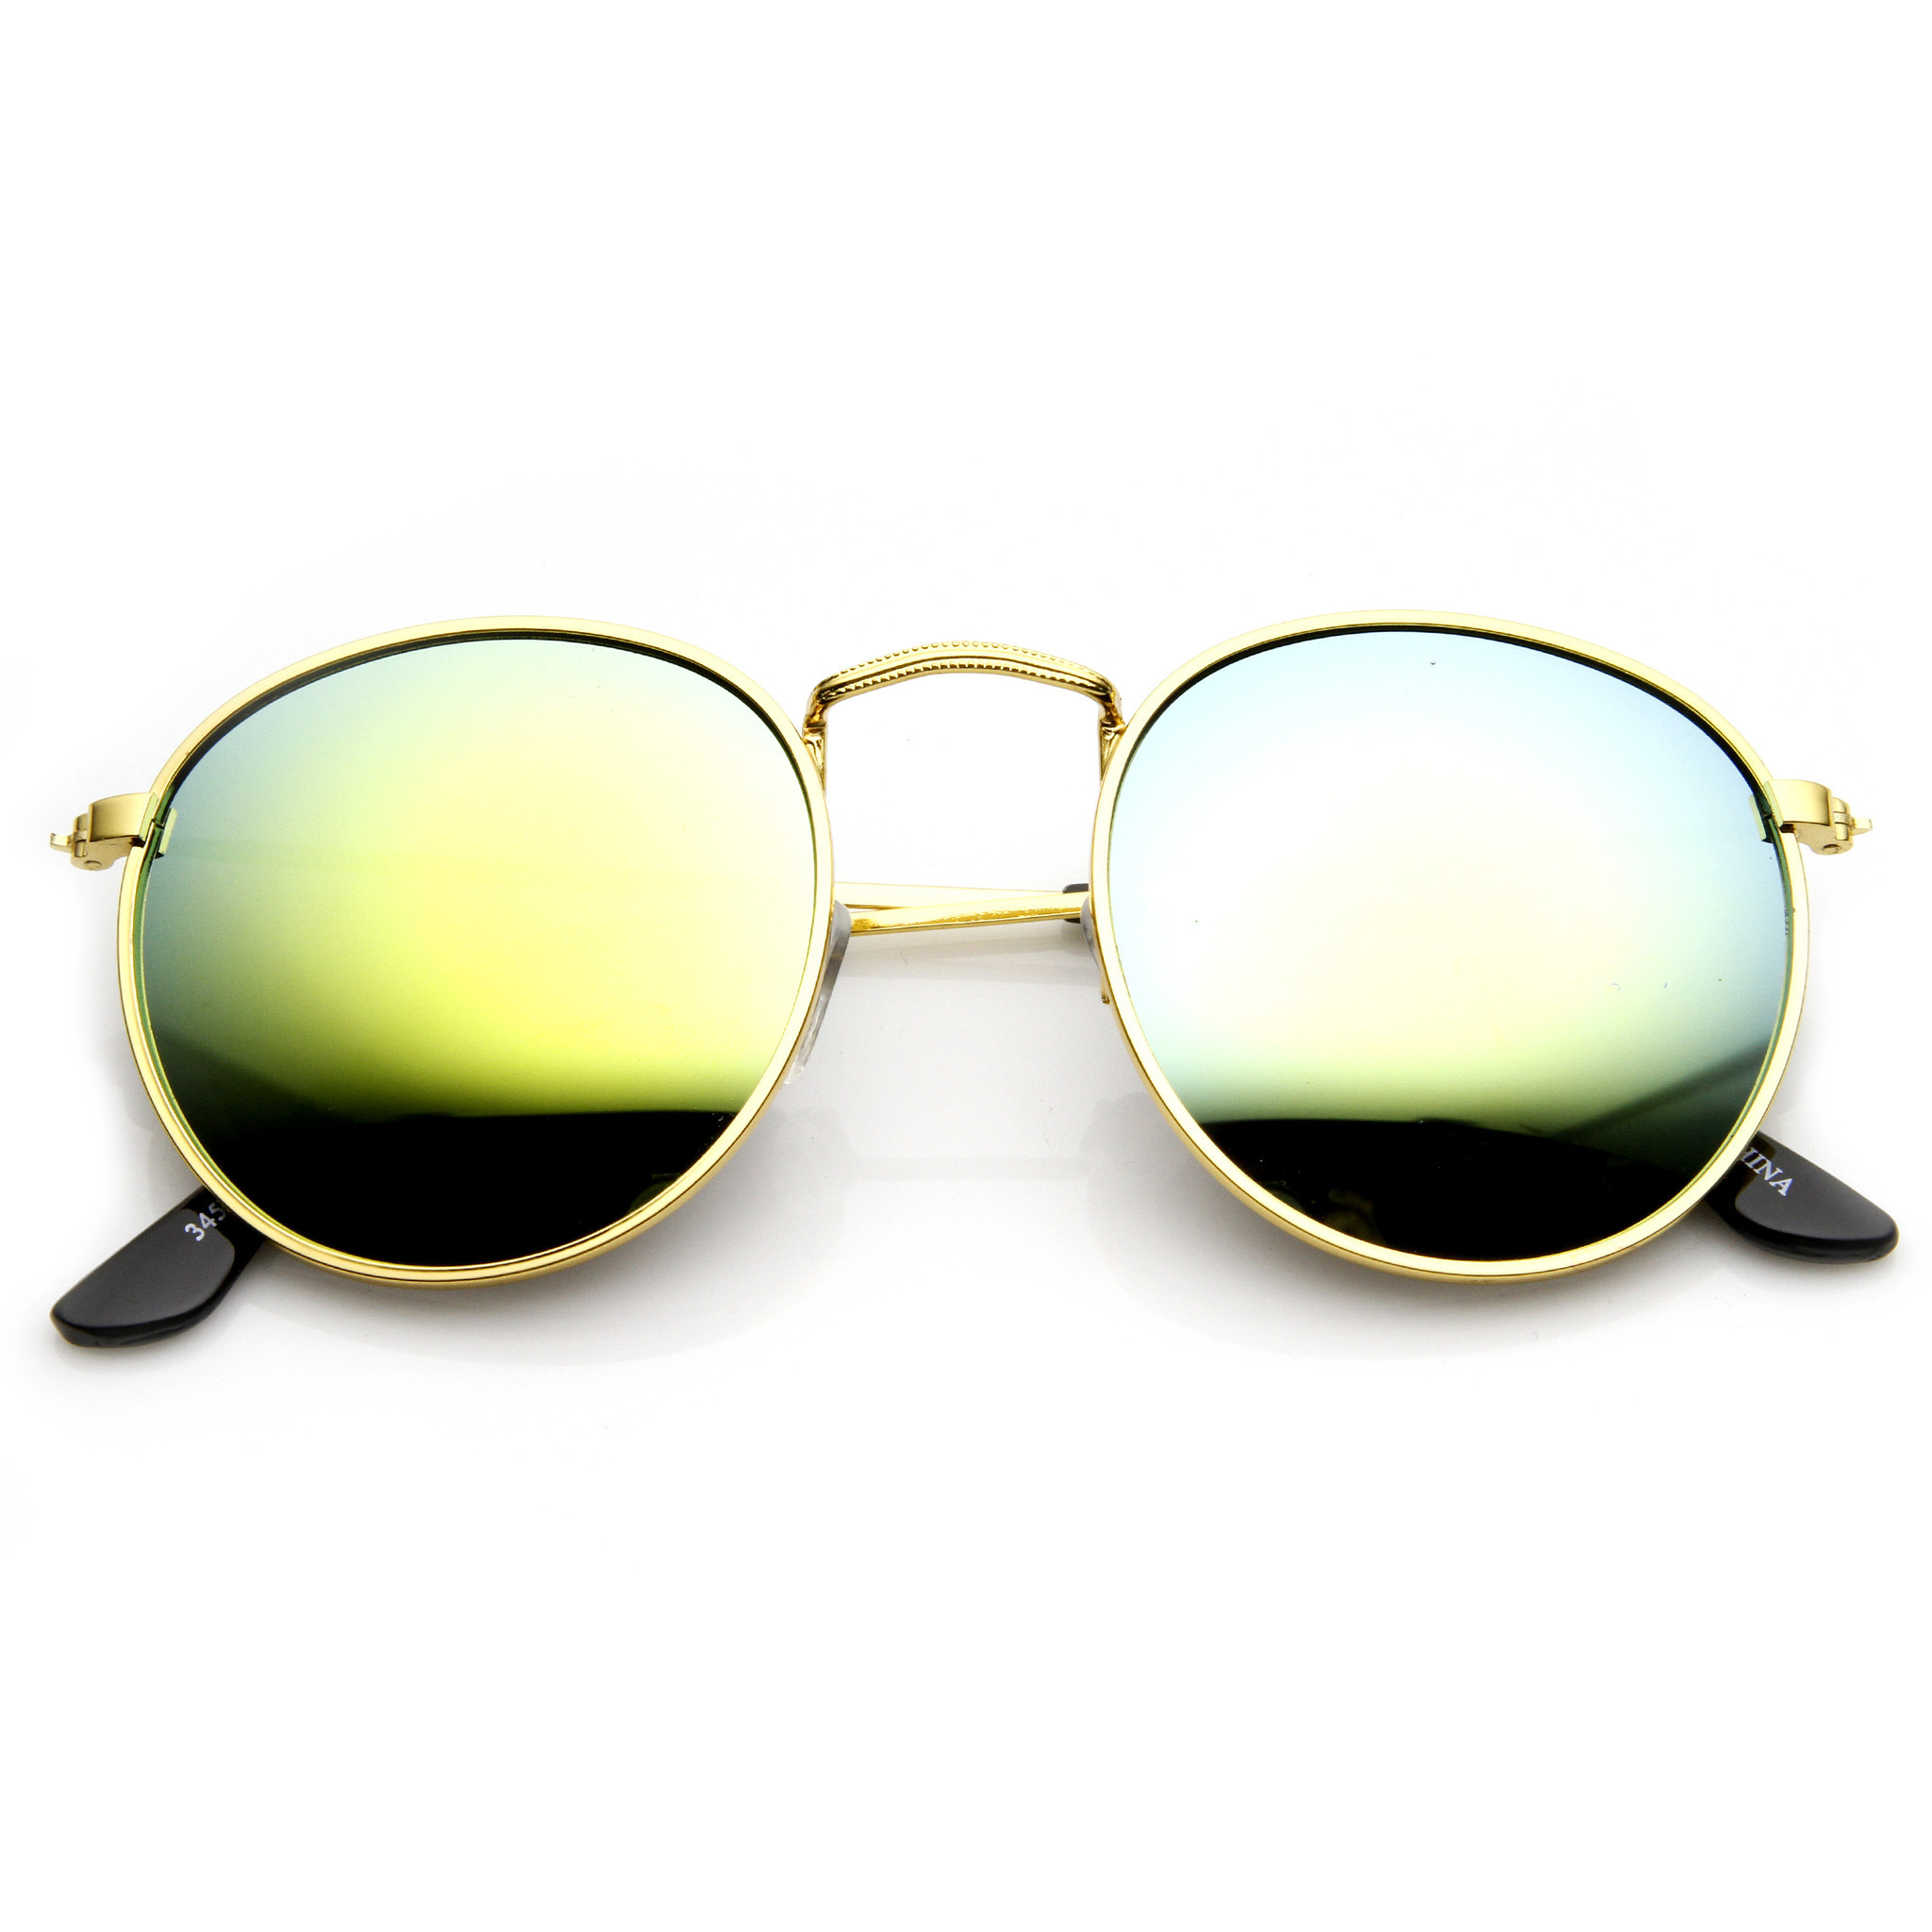 Trendy Retro P3 Round Flash Revo Mirror Lens Metal Sunglasses 9208